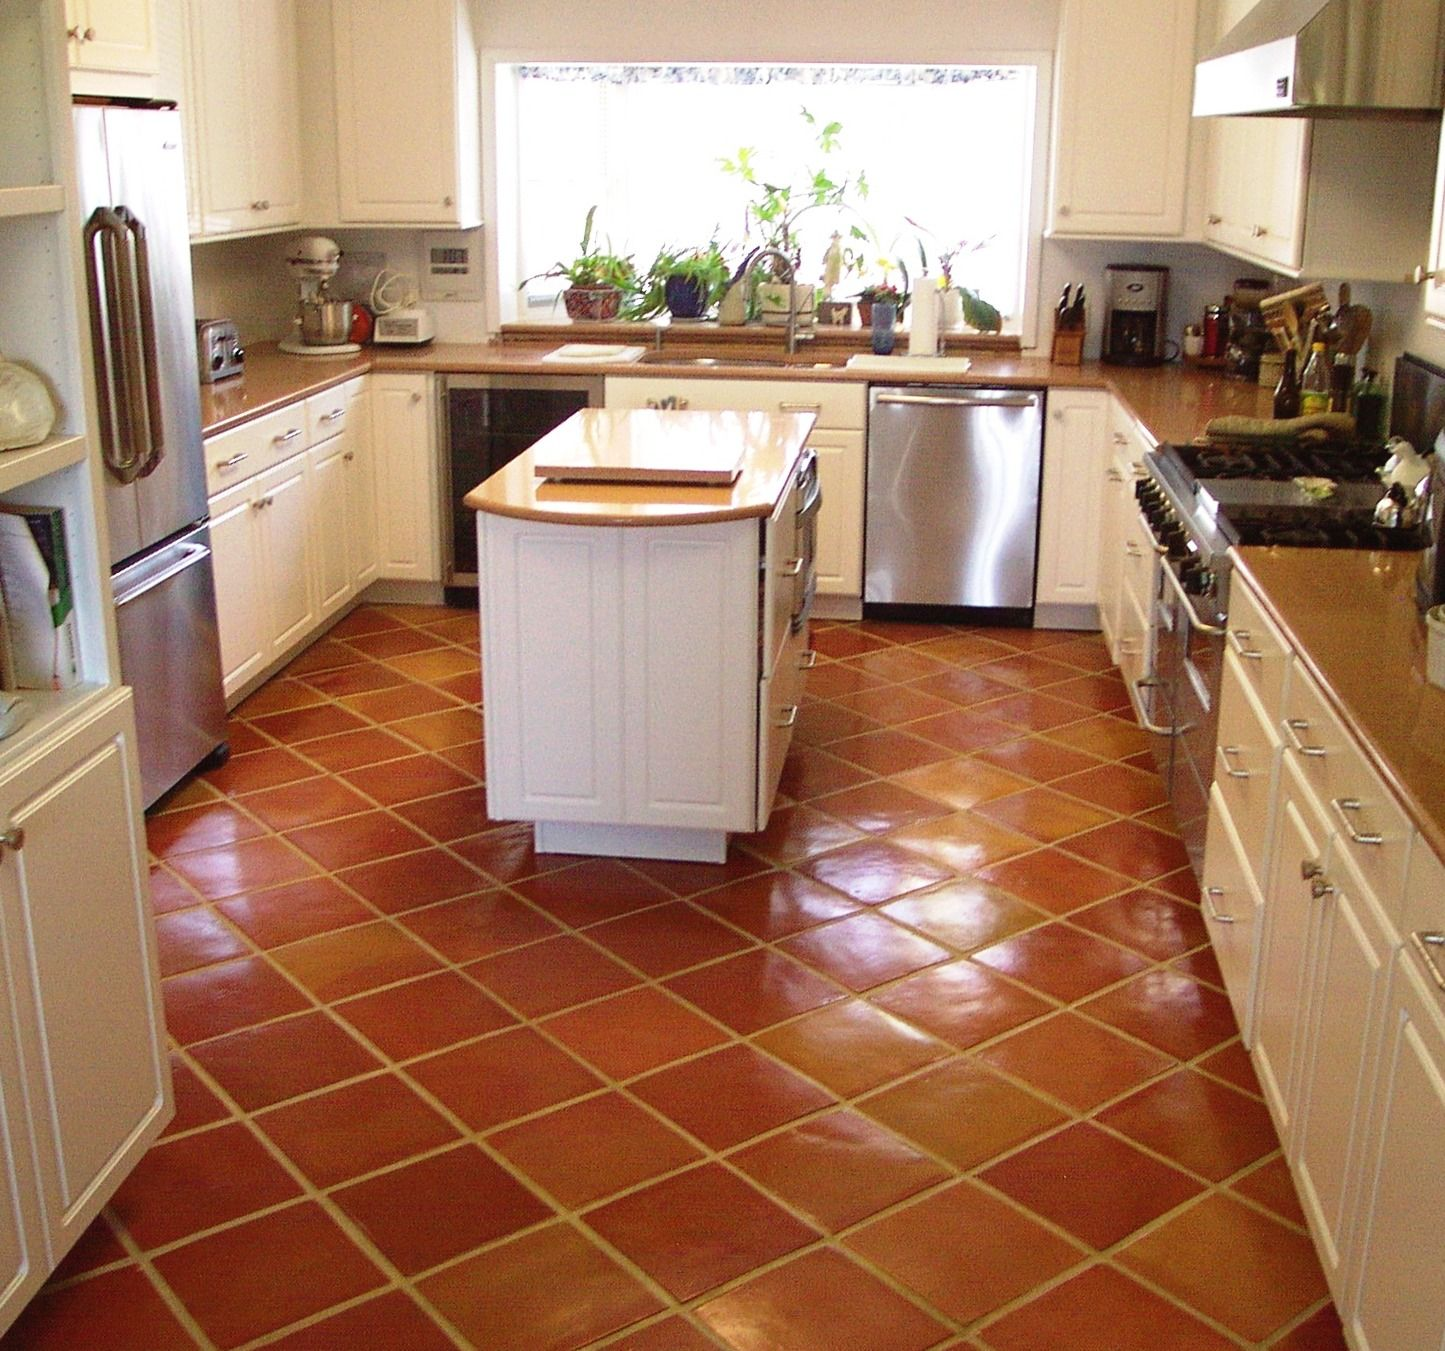 Traditional Saltillo Terra Cotta Floor Tile In A Beautiful White Country Kitchen I Love